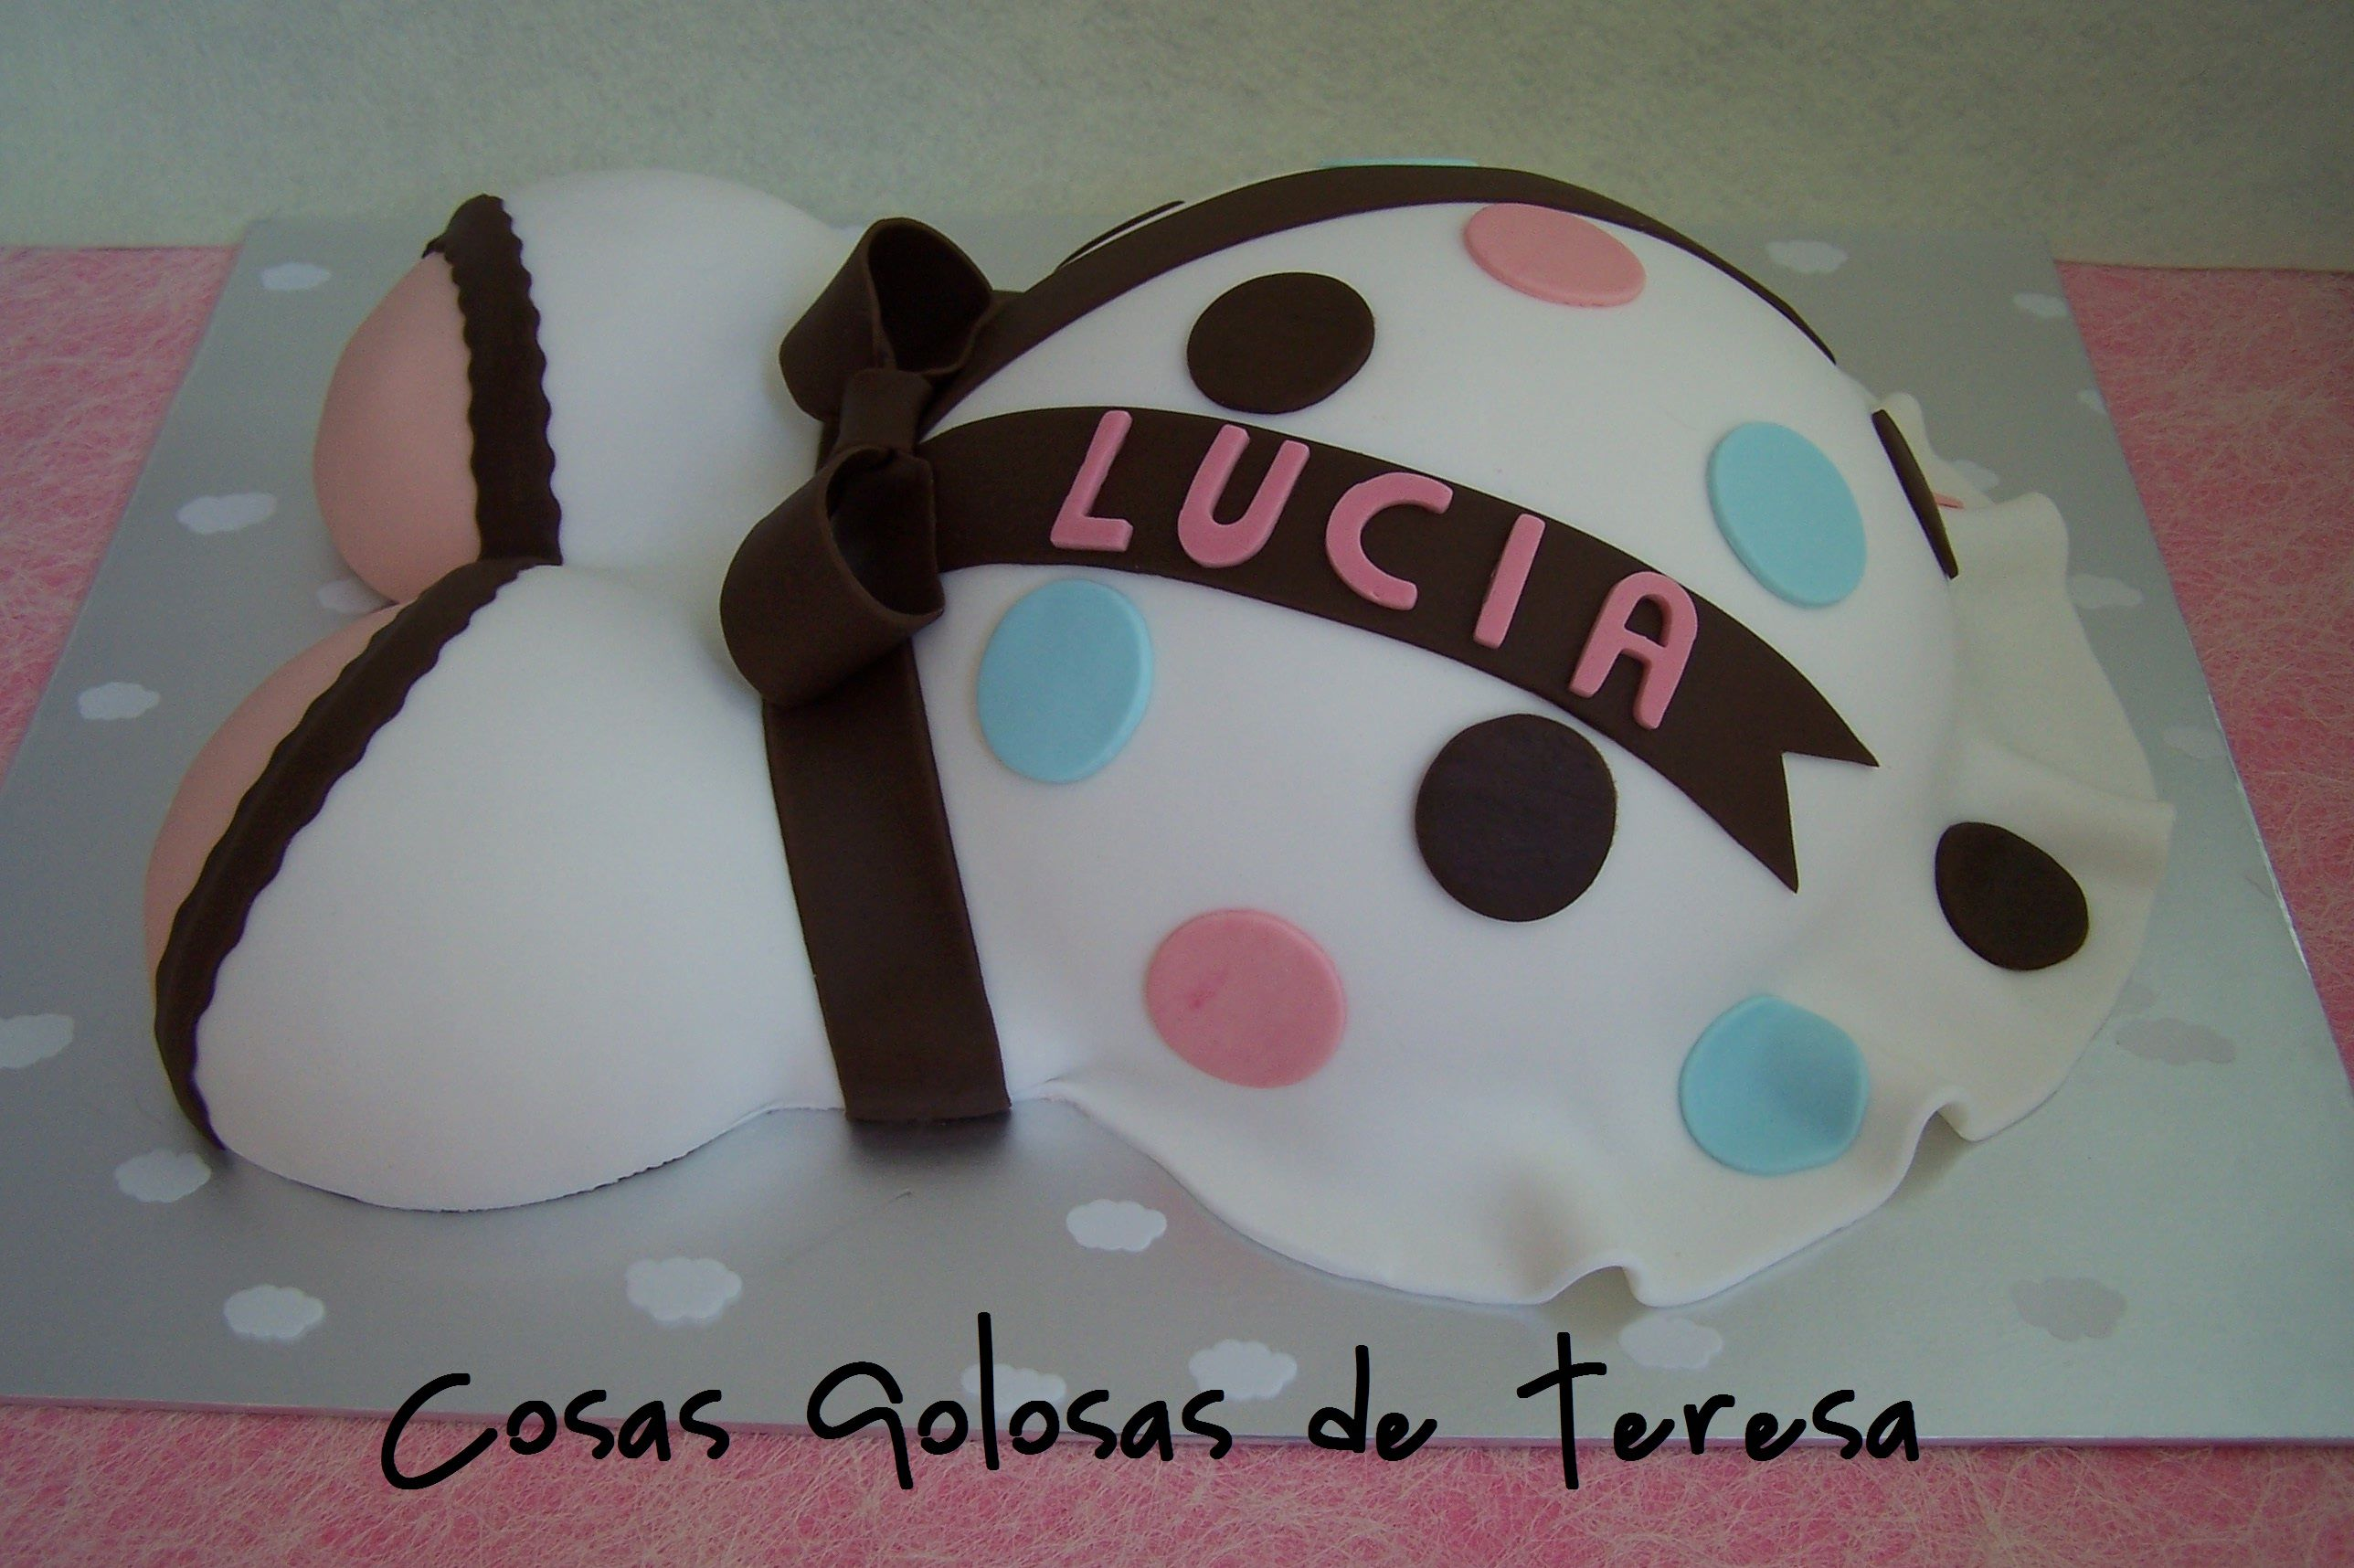 Tarta Embarazada https://www.facebook.com/cosasgolosas.deteresa/media_set?set=a.1414405235442572.1073741871.100006193266770&type=3